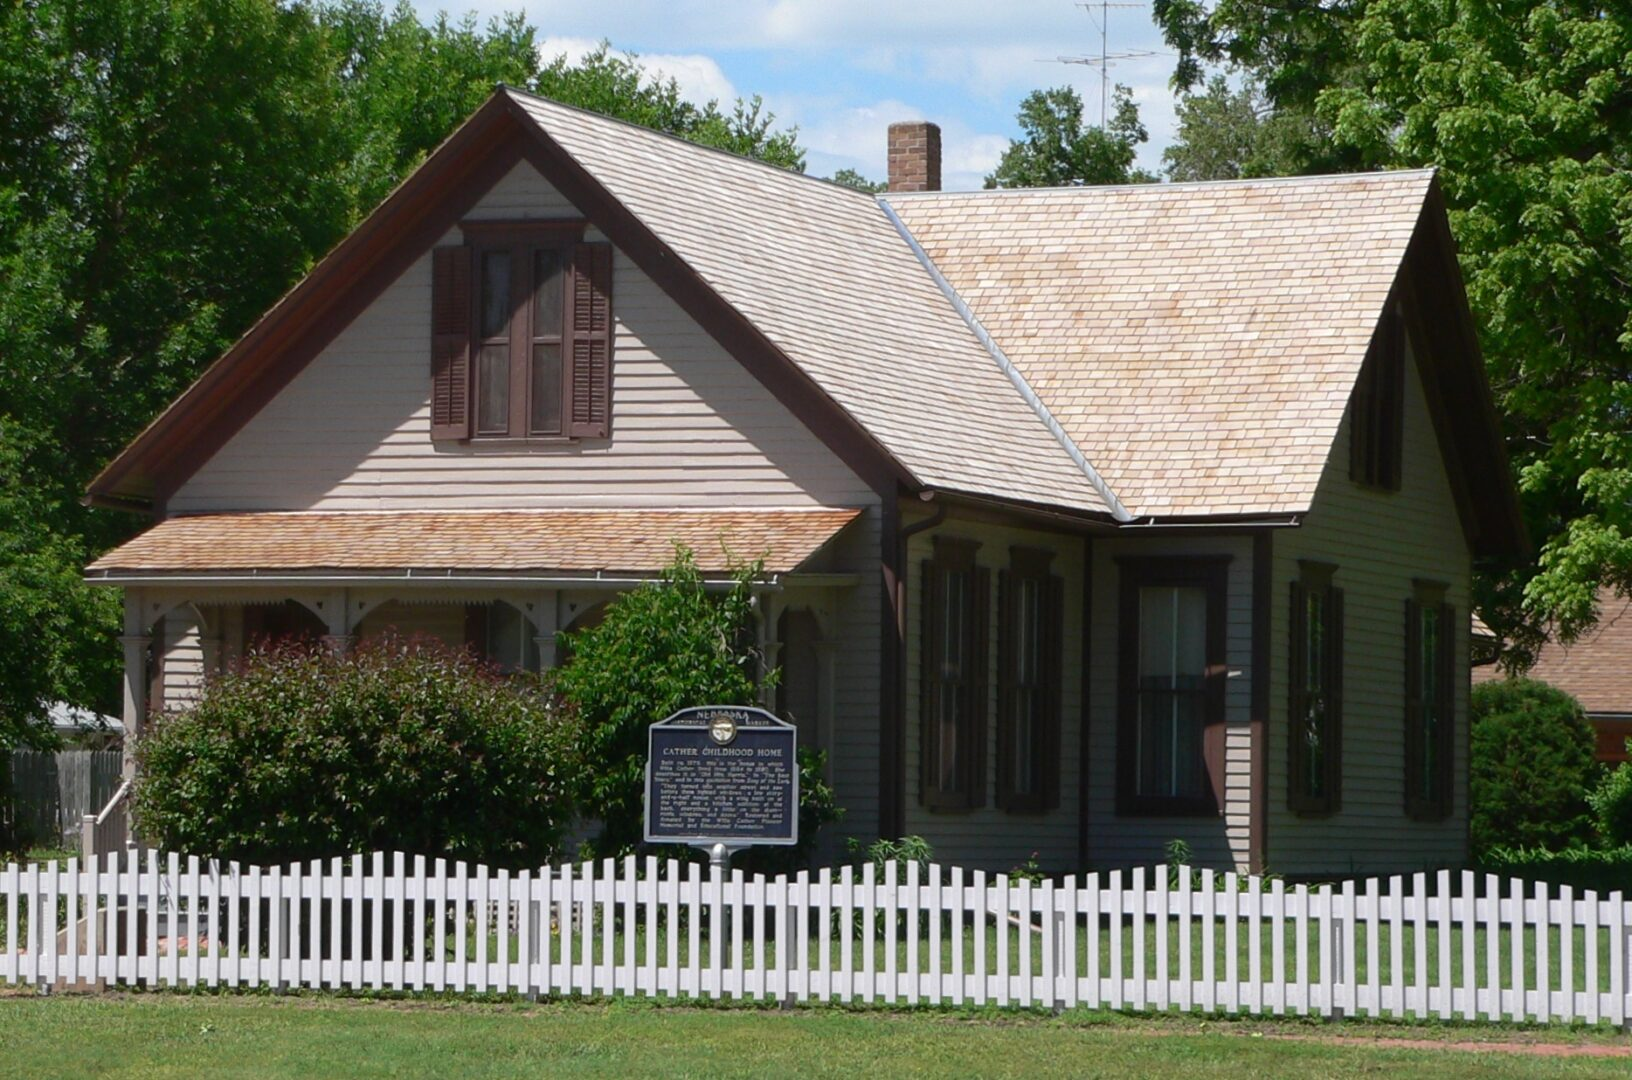 Willa Cather House on the southwest corner of 3rd Avenue and Cedar Street in Red Cloud, Nebraska